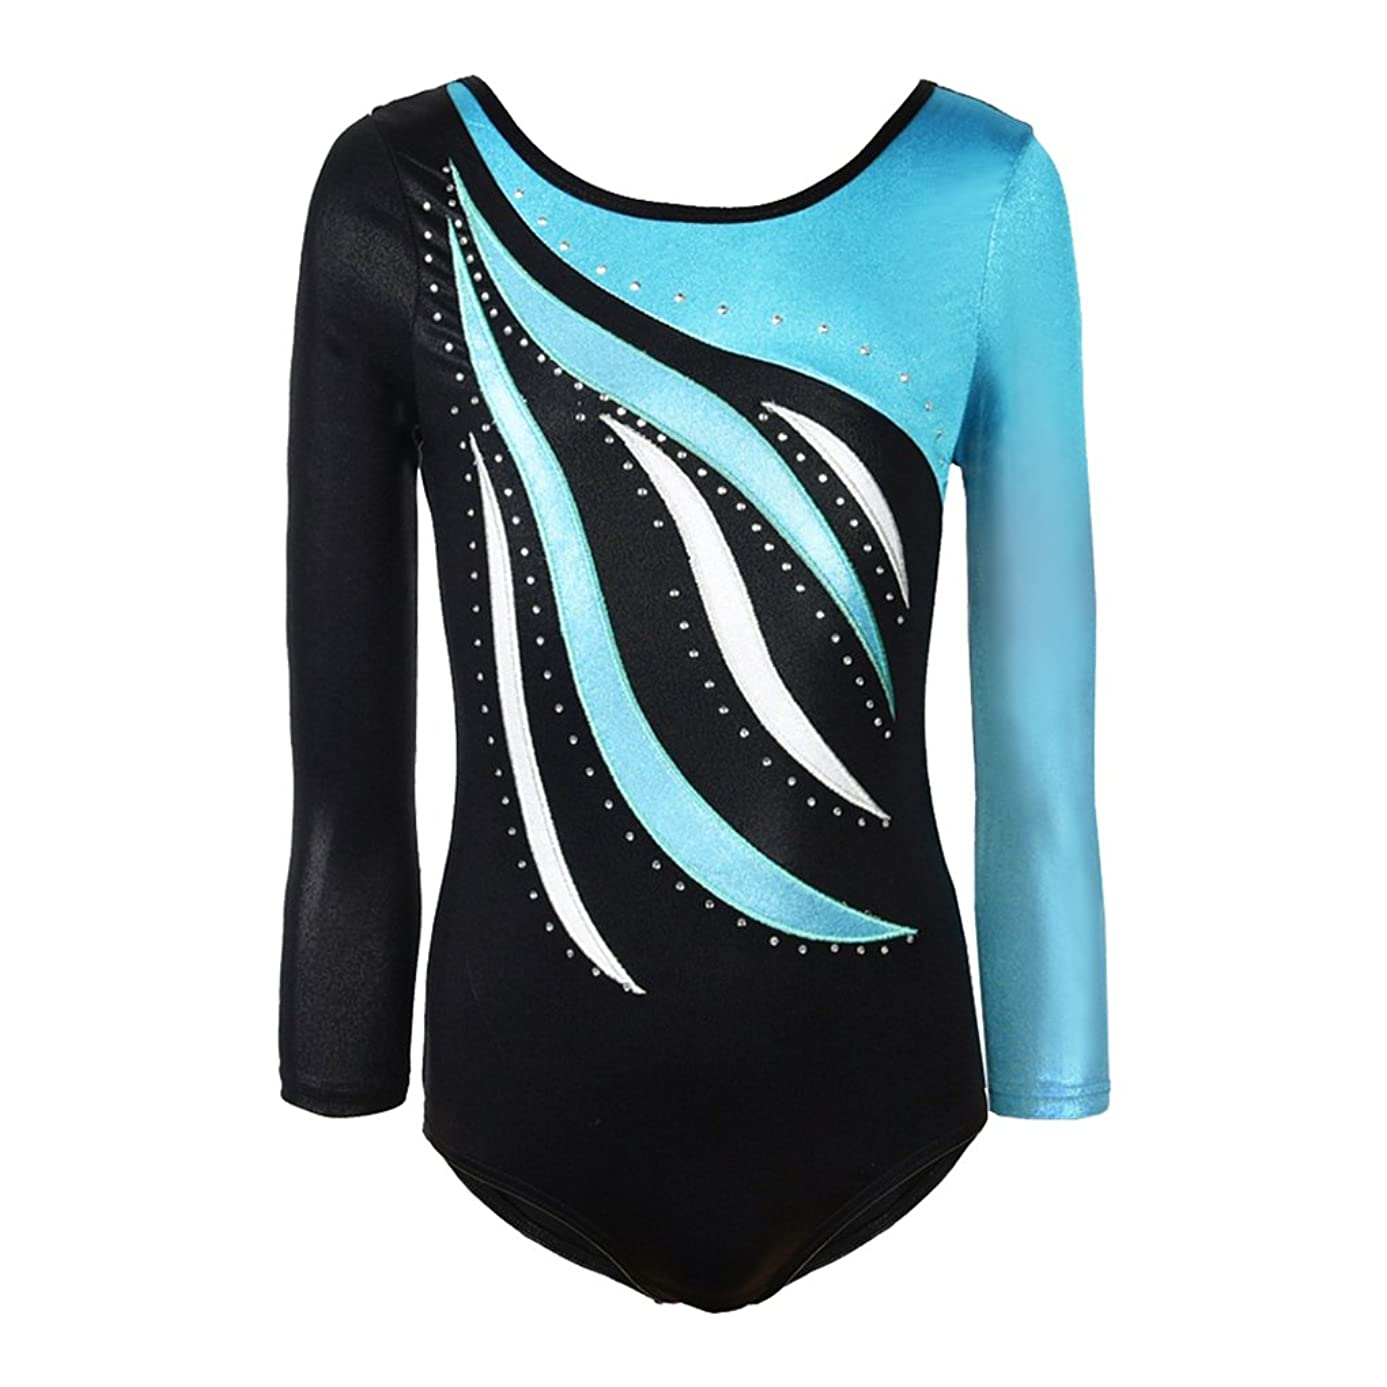 Girls Long Sleeve Shiny Waves Metallic Athletic Dance Gymnastics Leotard Outfit